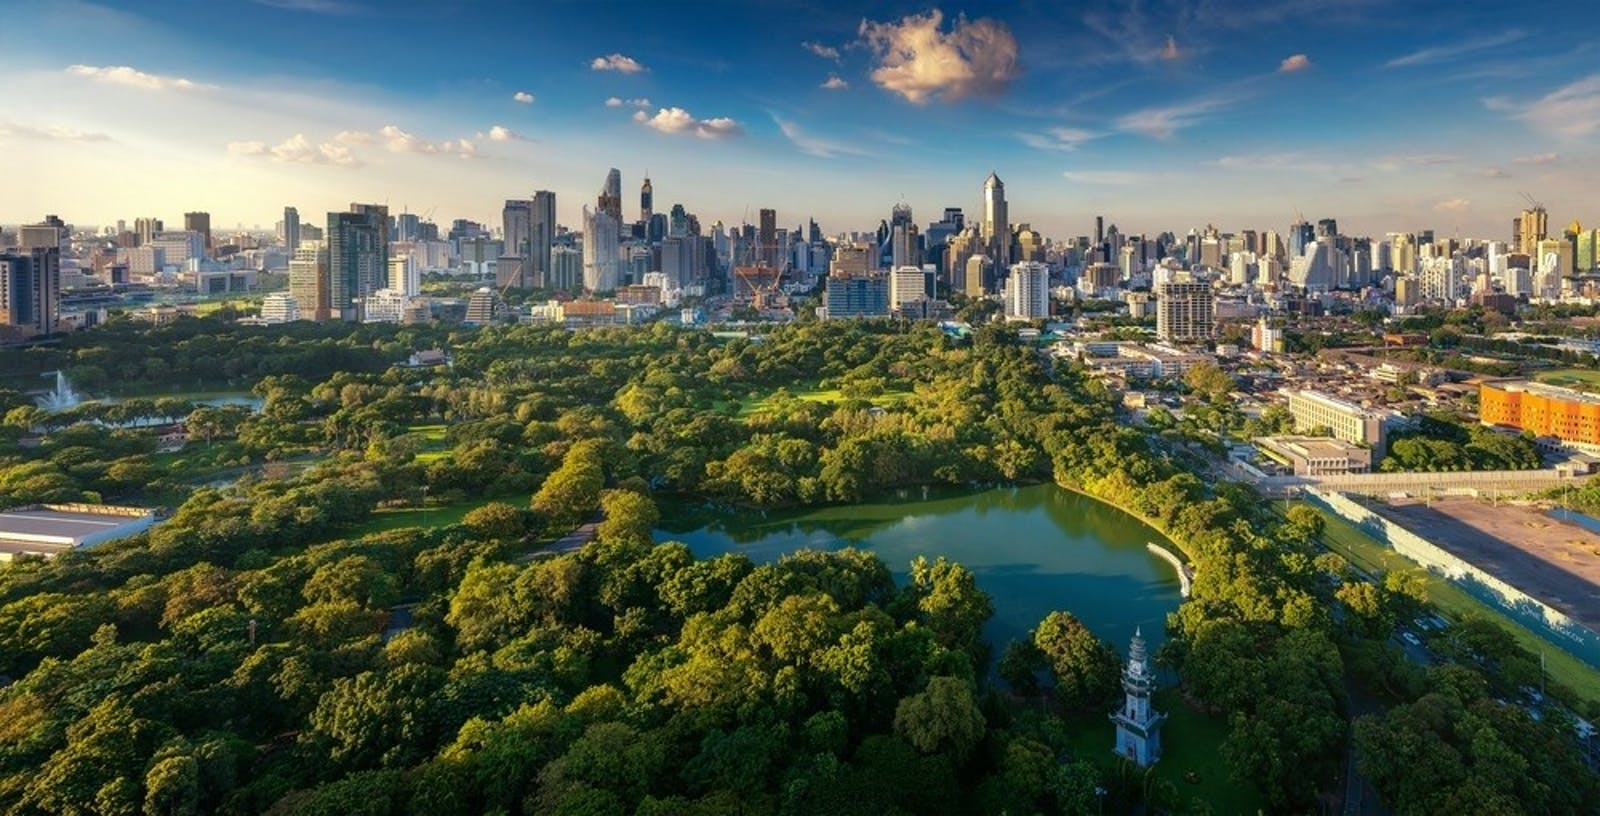 lumpini park and bangkok city building view